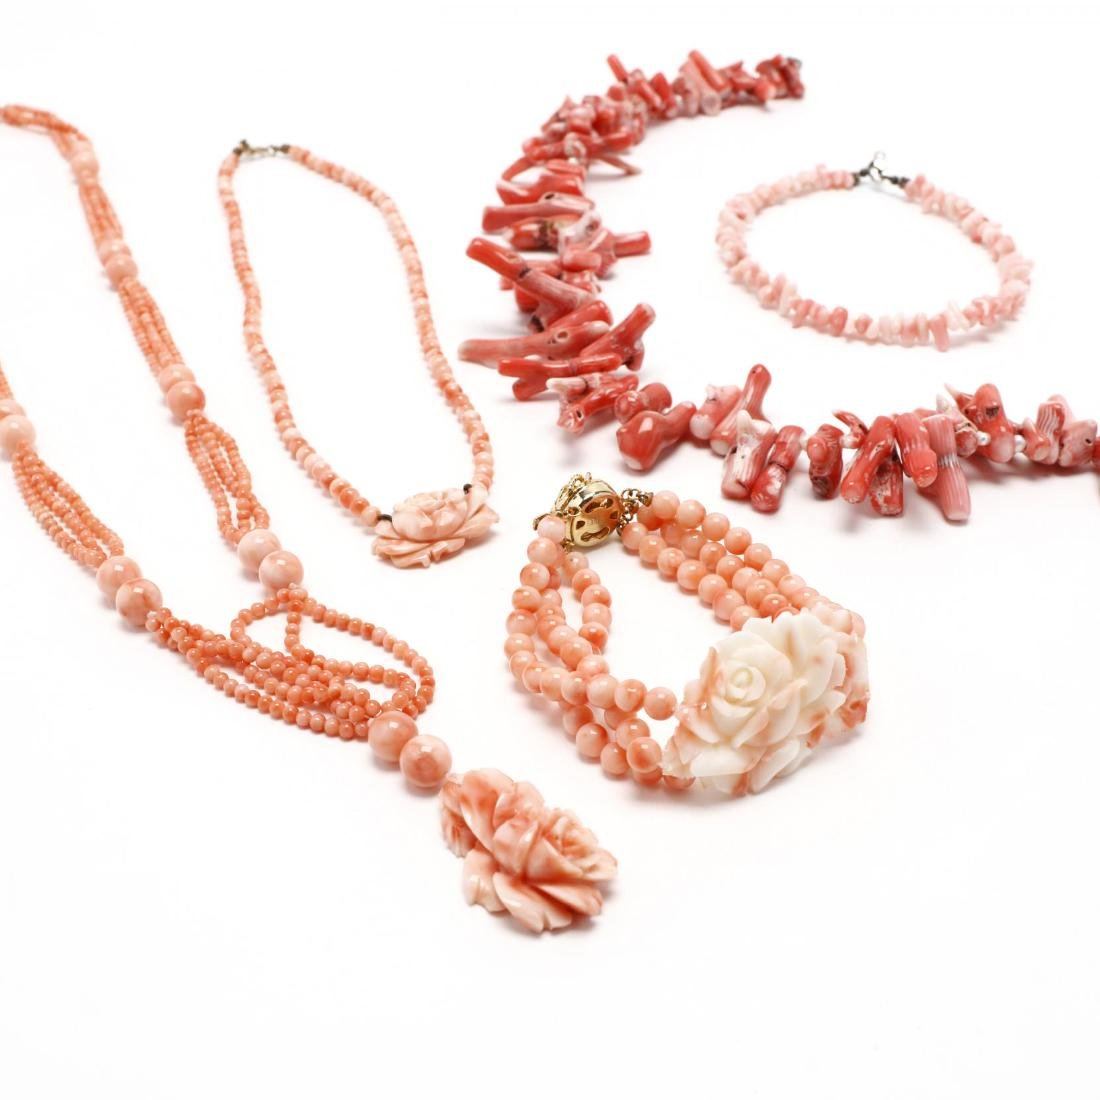 Five Coral Bead Jewelry Items - 2